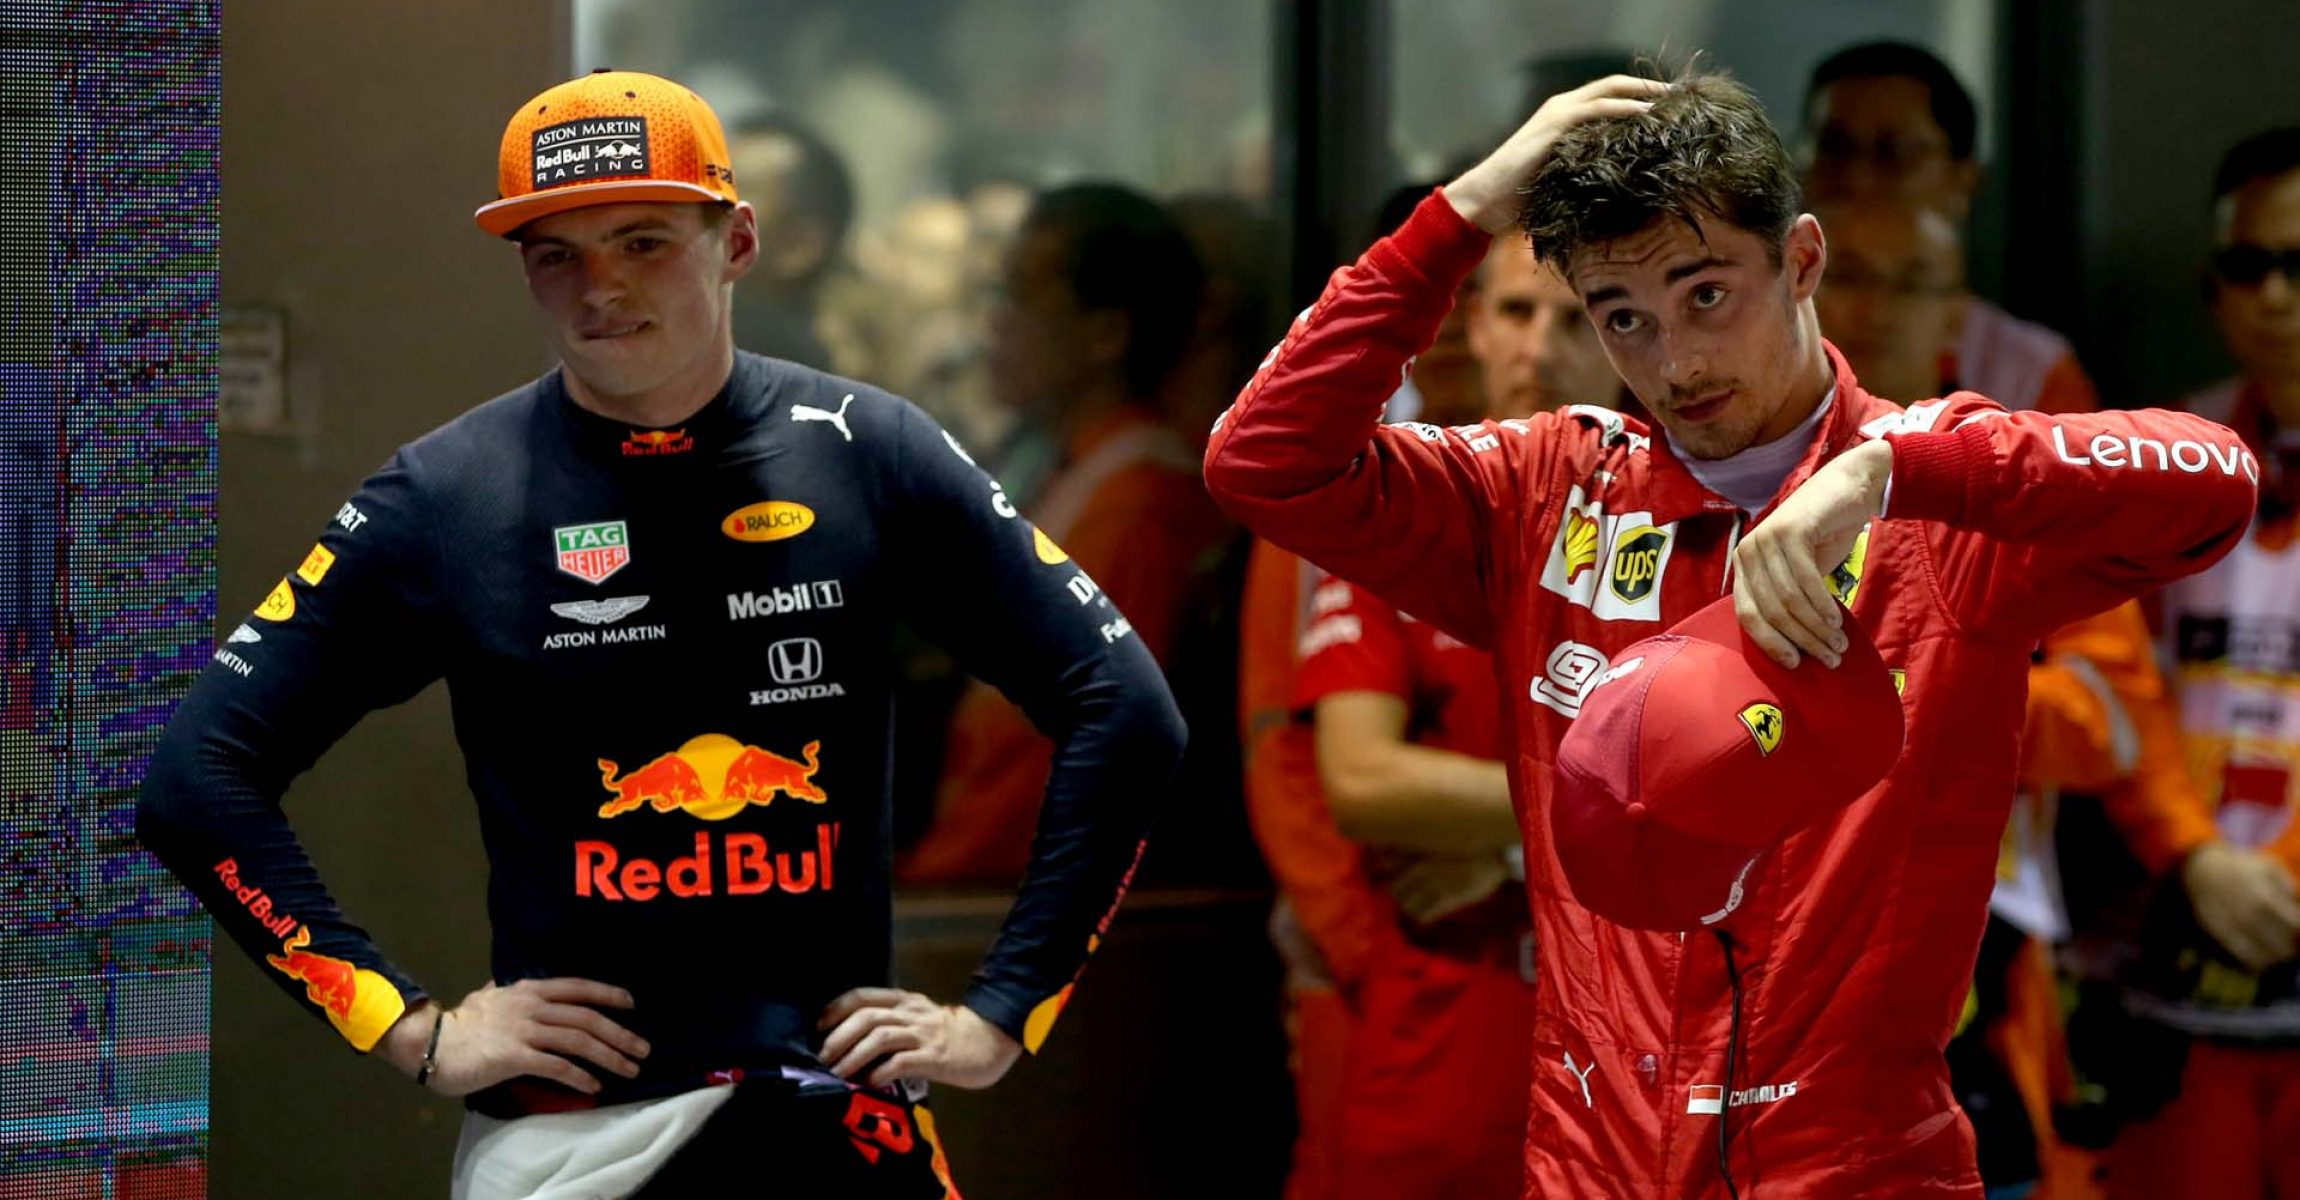 SINGAPORE, SINGAPORE - SEPTEMBER 22: Second placed Charles Leclerc of Monaco and Ferrari and third placed Max Verstappen of Netherlands and Red Bull Racing look on in parc ferme during the F1 Grand Prix of Singapore at Marina Bay Street Circuit on September 22, 2019 in Singapore. (Photo by Charles Coates/Getty Images) // Getty Images / Red Bull Content Pool  // AP-21NB1GD1H1W11 // Usage for editorial use only //